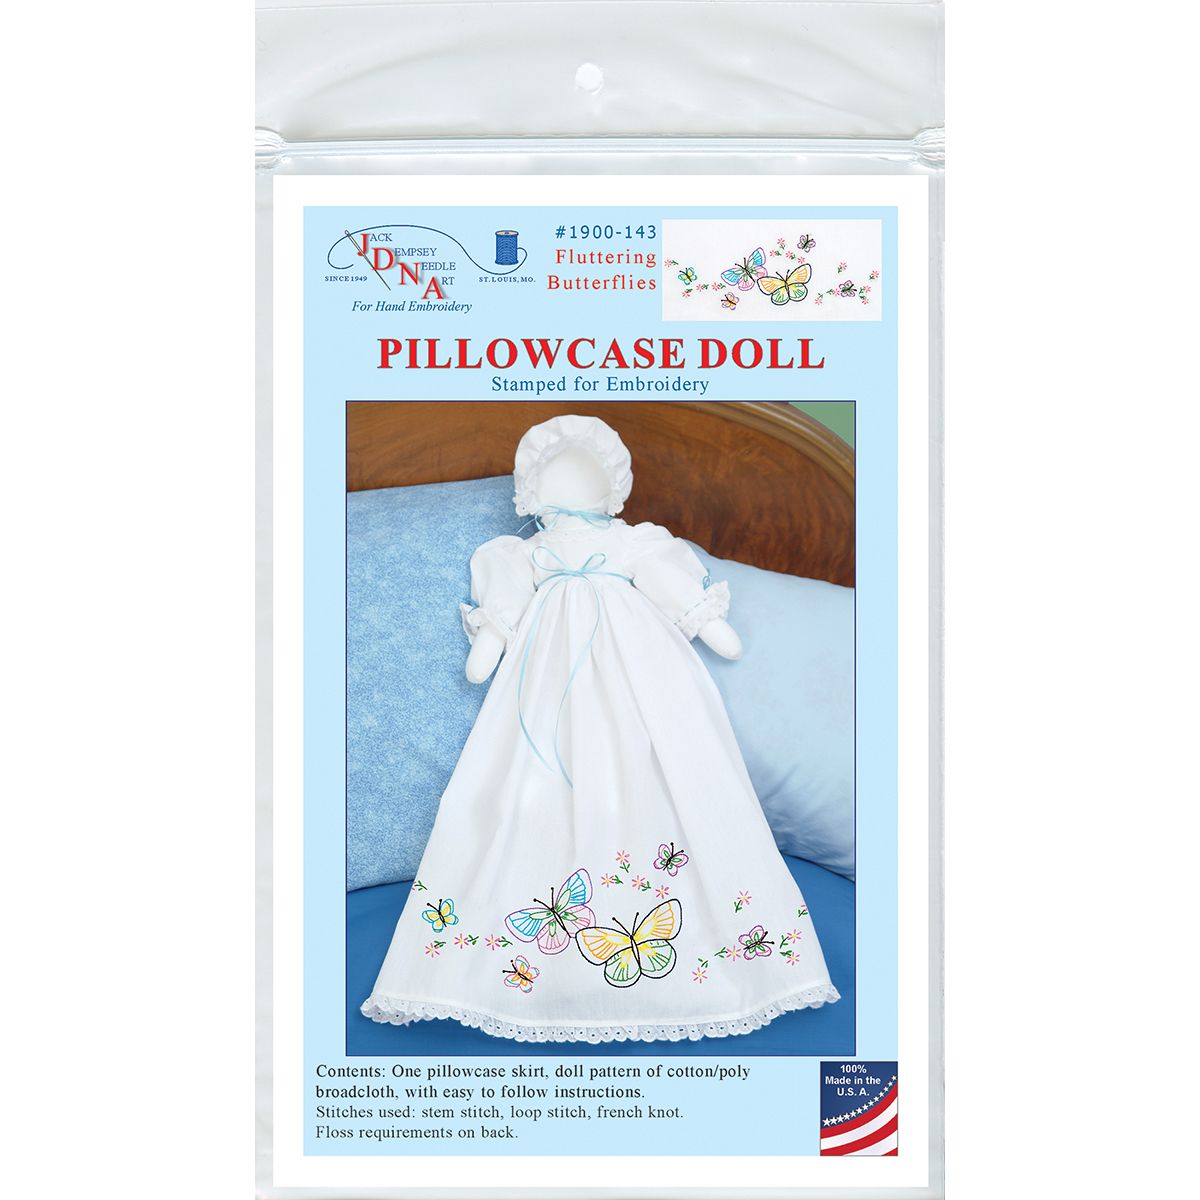 Stamped White Pillowcase Doll Kit-Fluttering Butterflies Multi-Colored